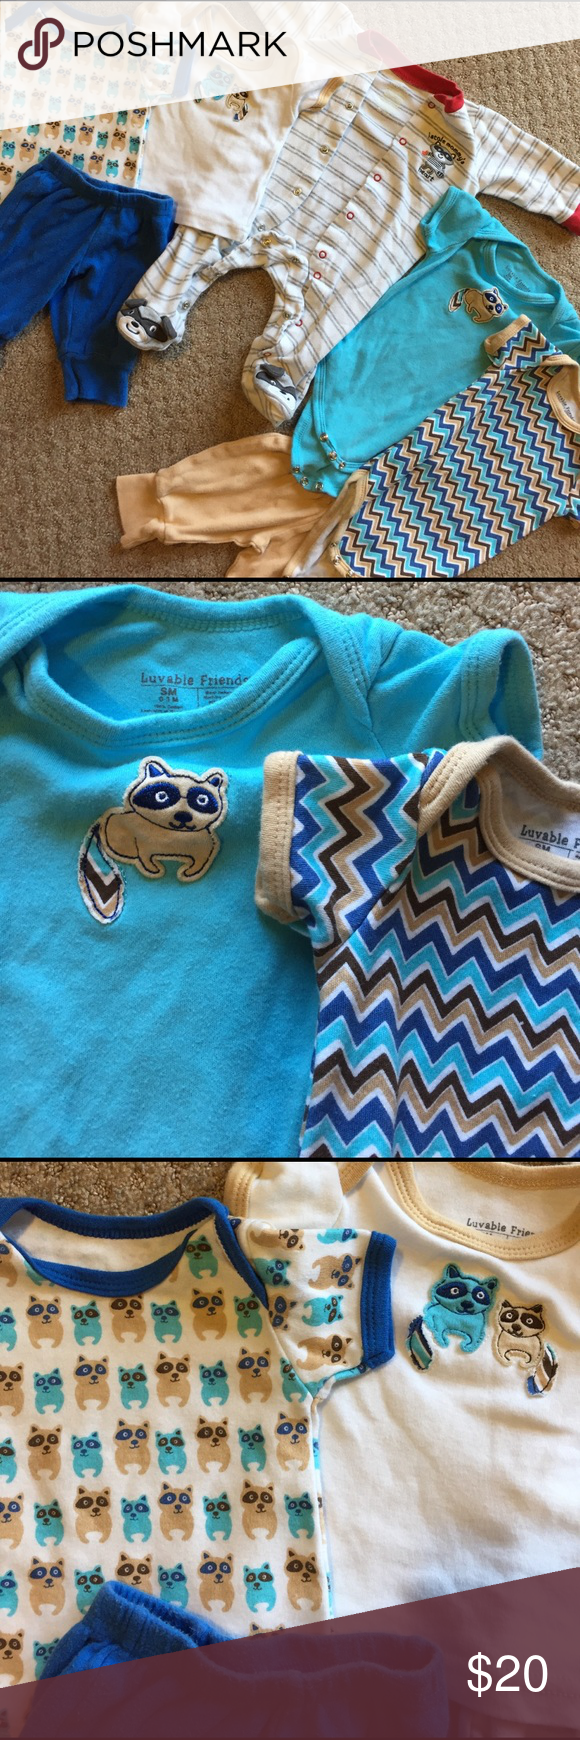 Blue raccoon onesie in excellent condition! Blue raccoon onesie in excellent condition! See matching chevron onesie, raccoon shirt with tan trim, raccoon shirt with blue trim, blue sweatpants and tan sweatpants if interested! Luvable Friends Shirts & Tops Tees - Short Sleeve